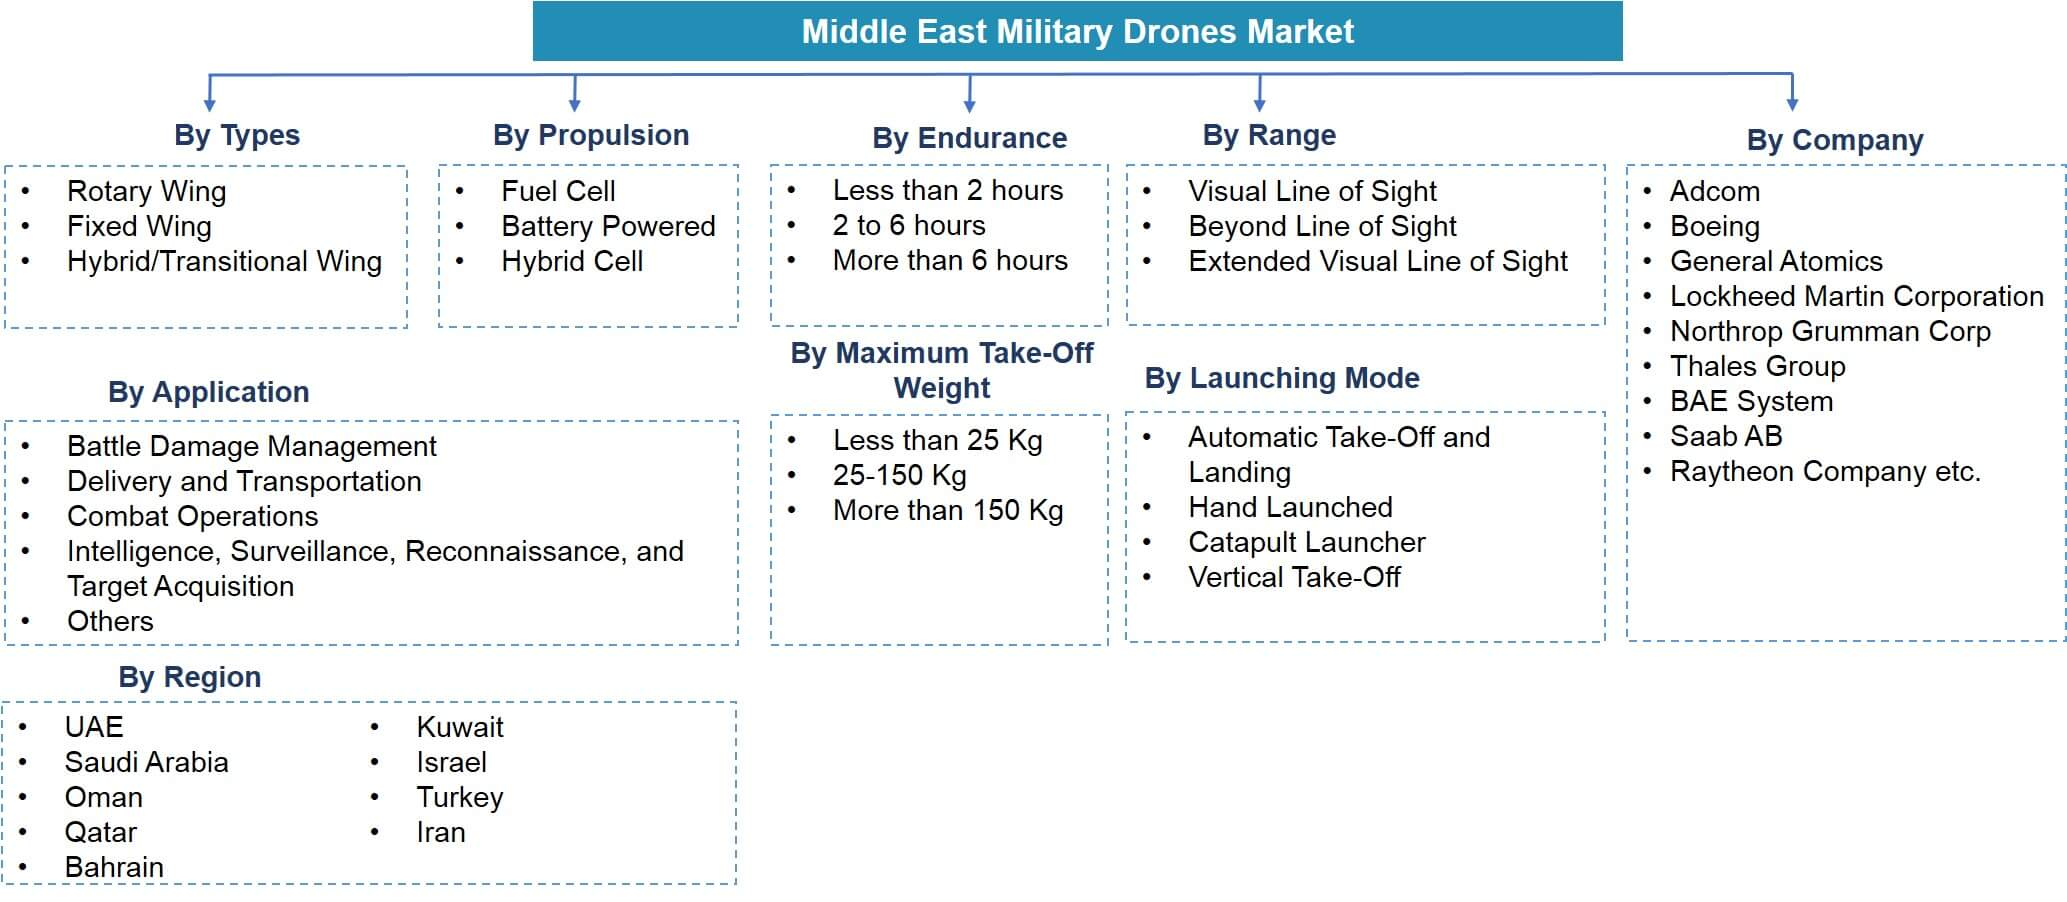 Middle East Military Drones Market Segmentation